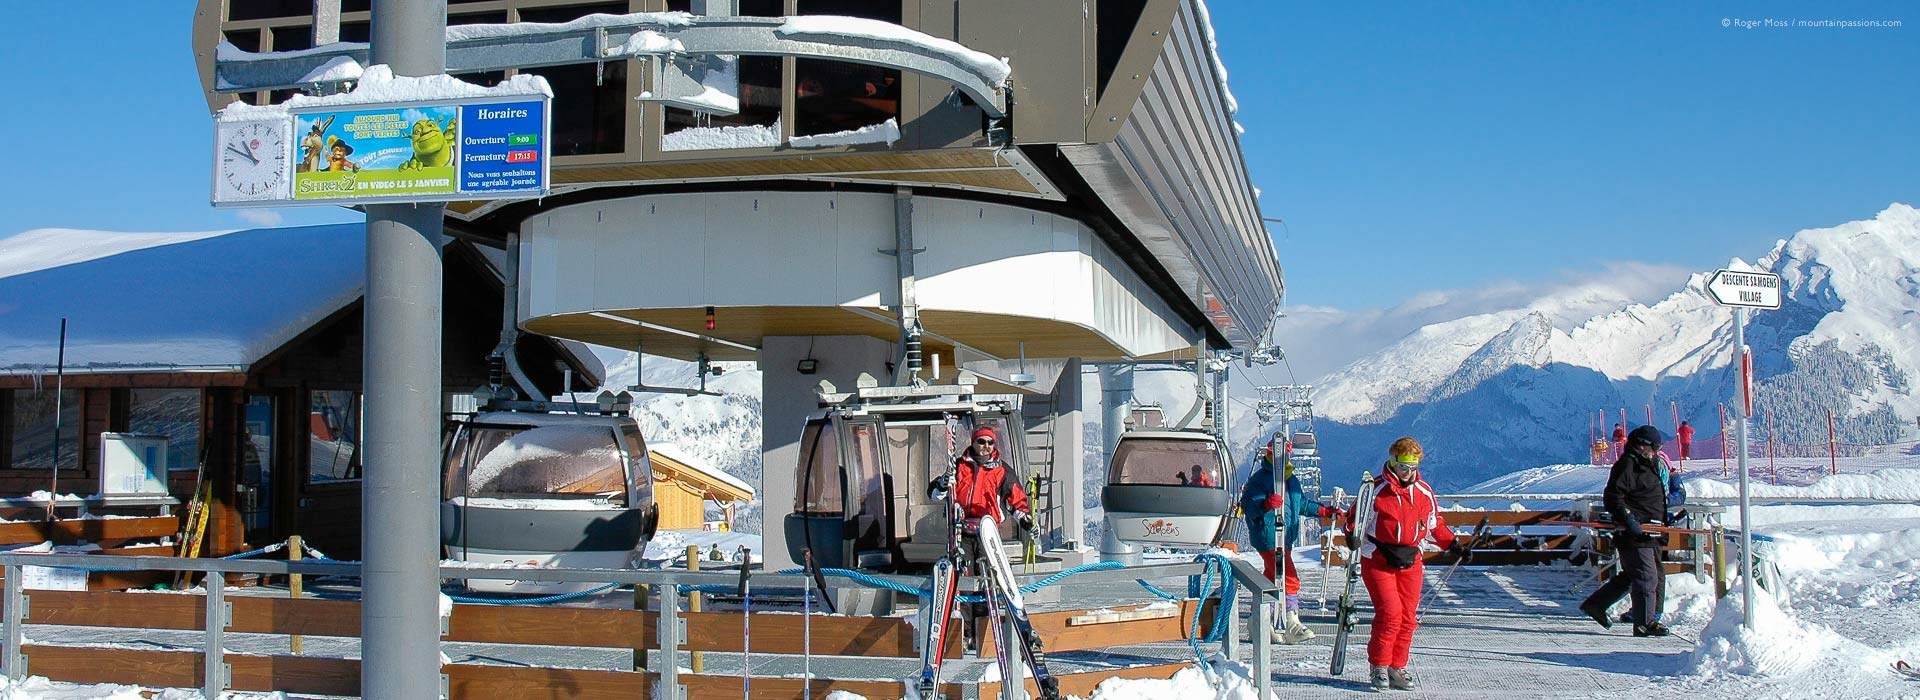 Skiers leaving top station of high-speed gondola ski lift